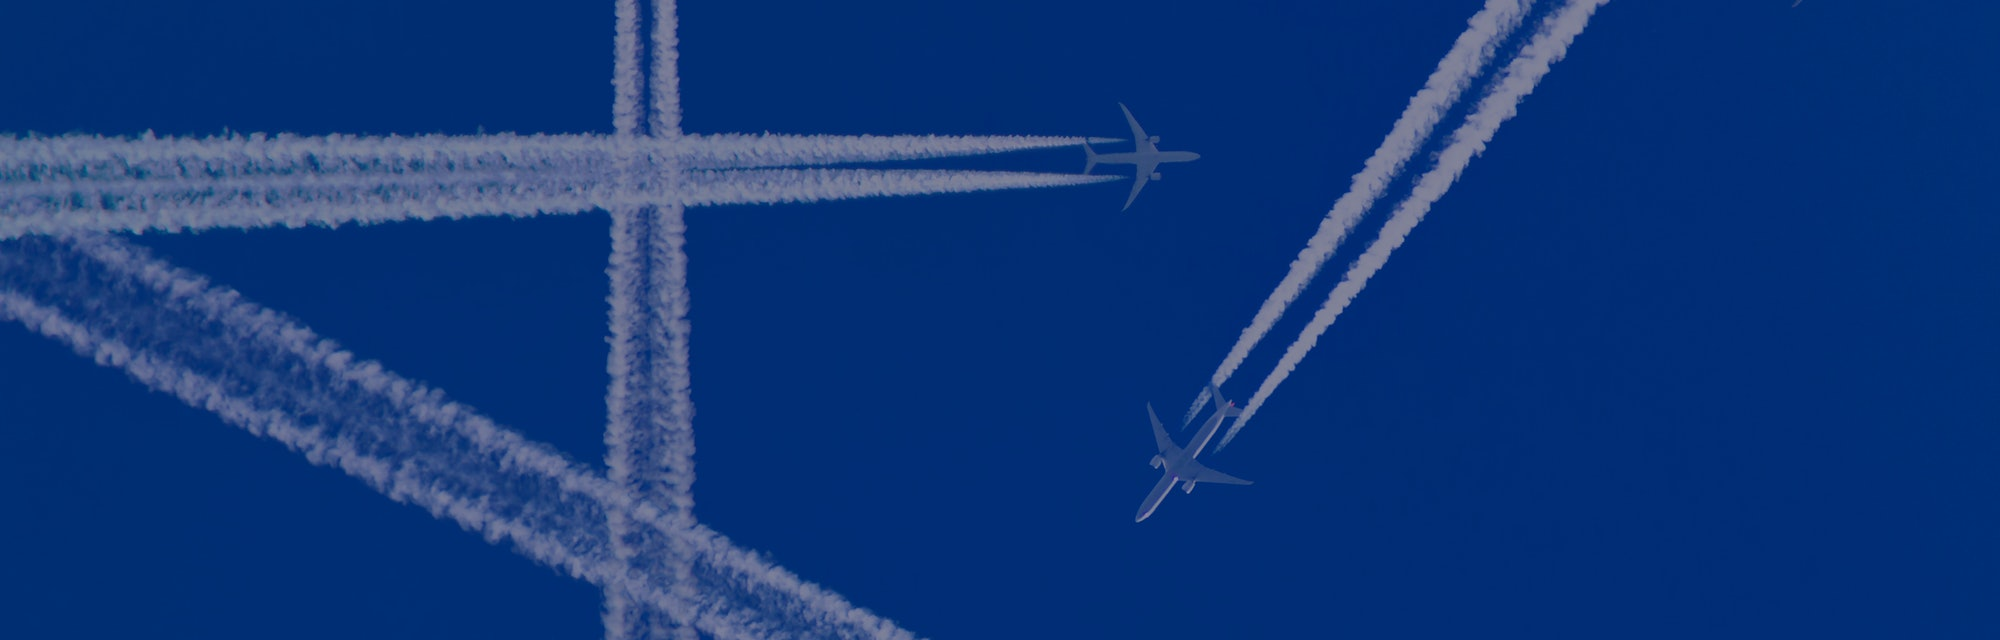 Several aircraft with white contrails